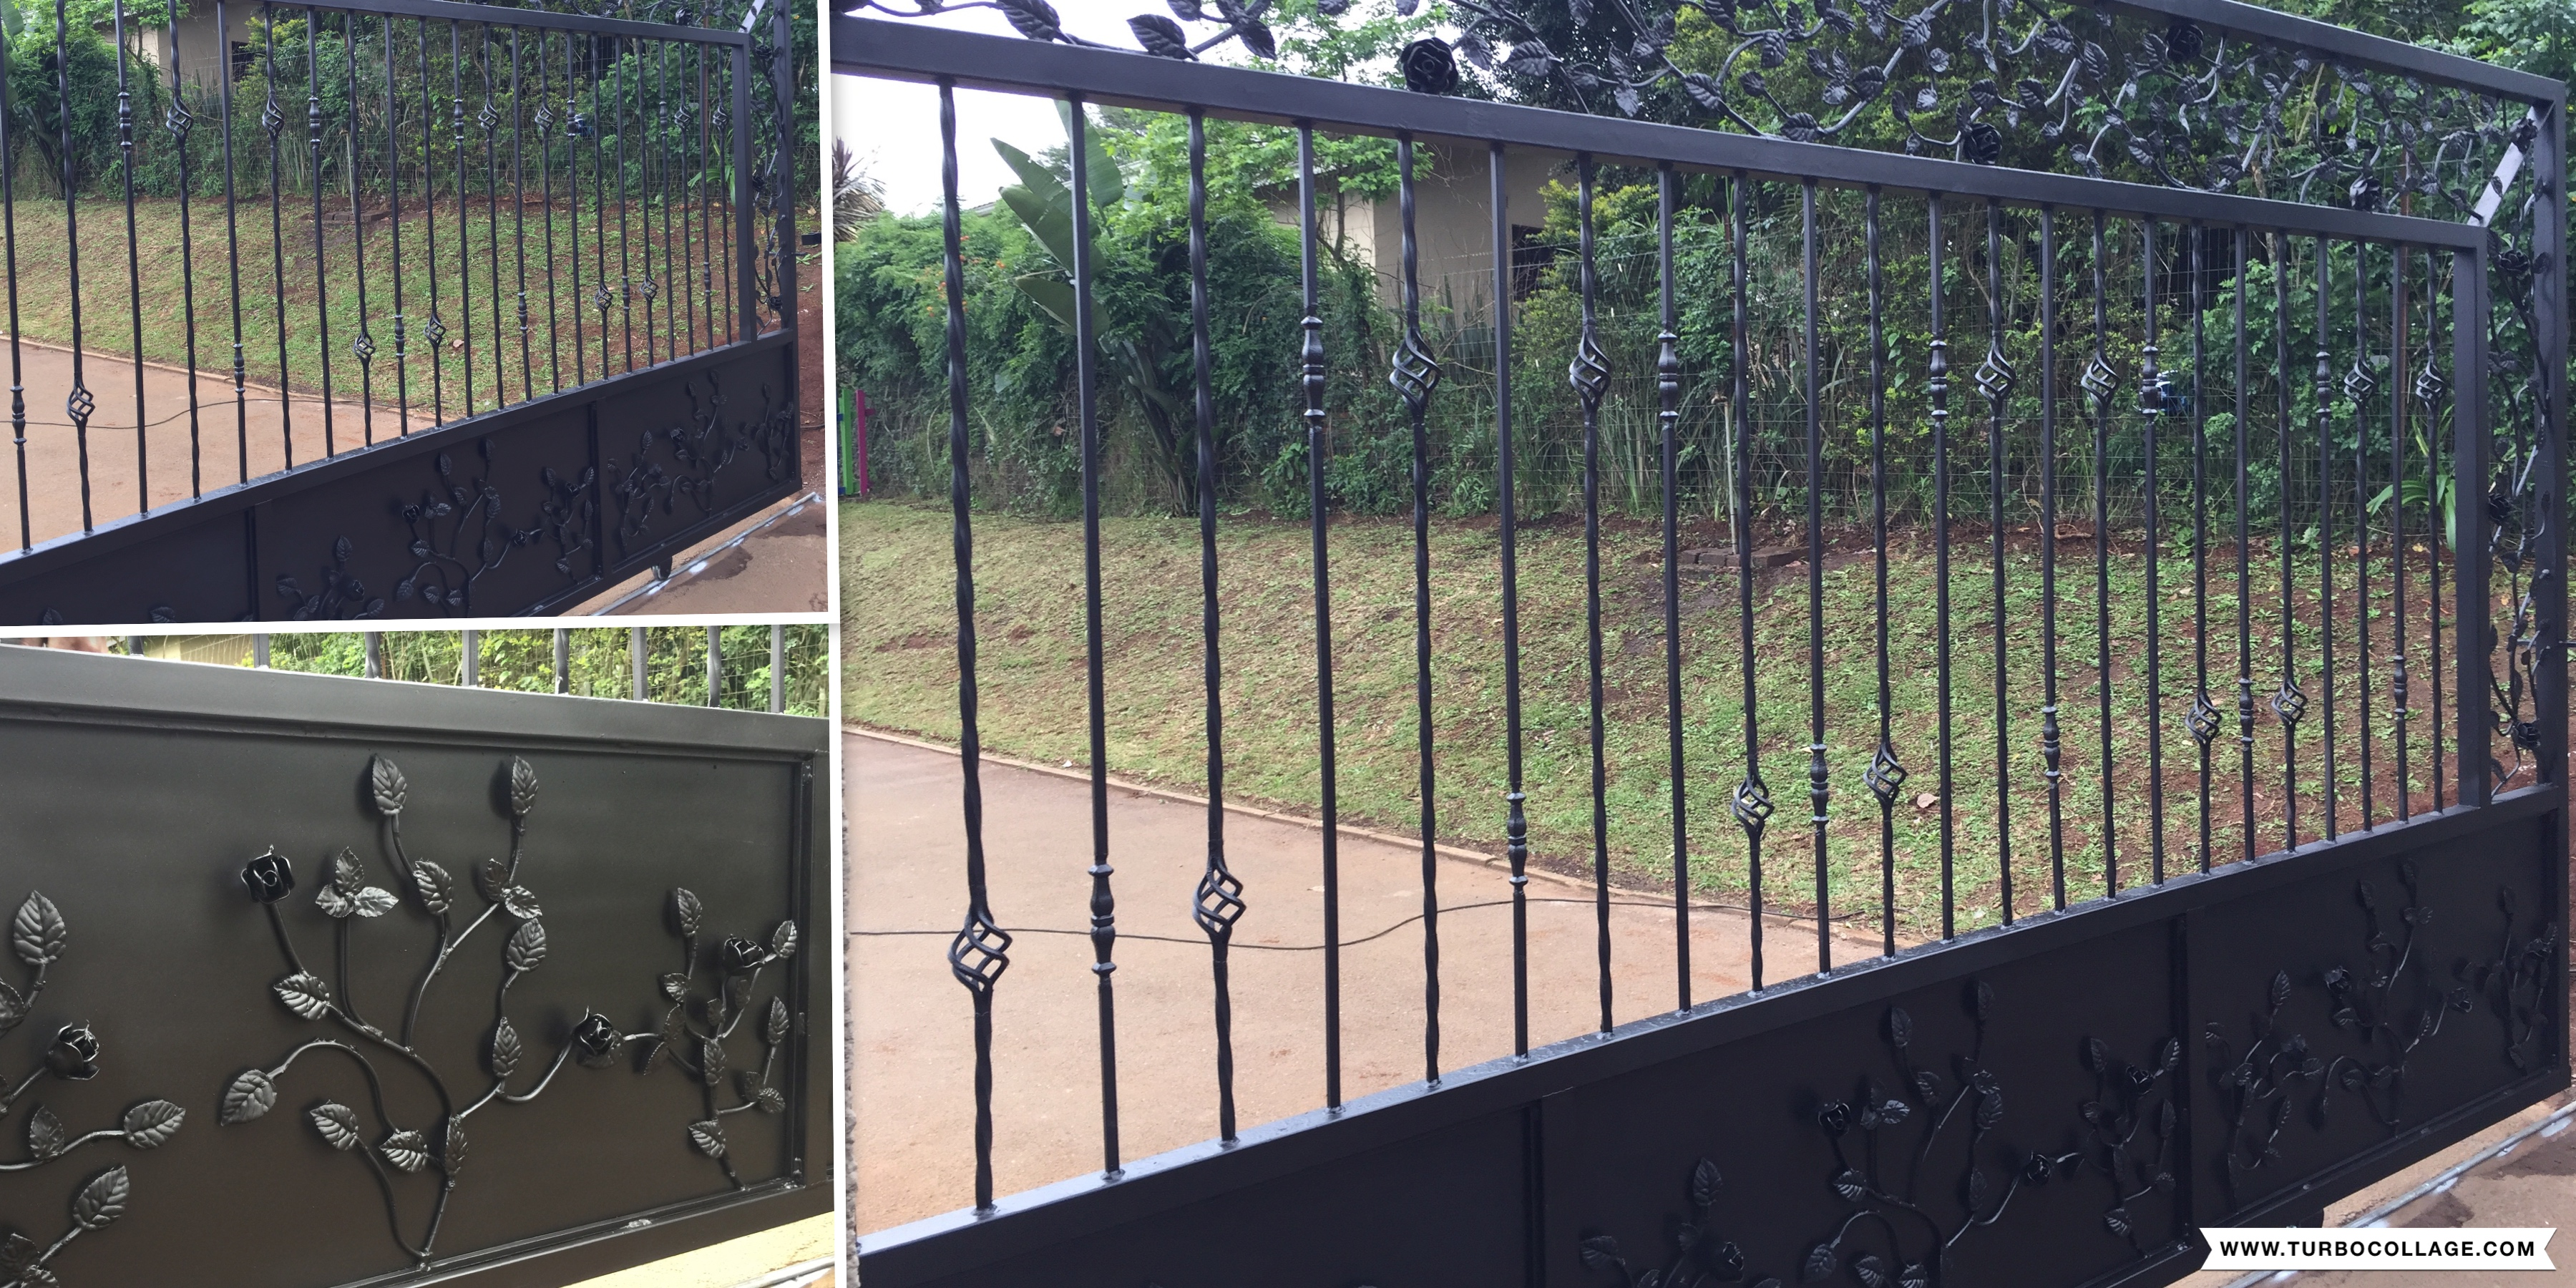 Sliding gates, Driveway gates, solid gates, wooden gates, balau wooden gates, garage doors, Aluzinc garage door